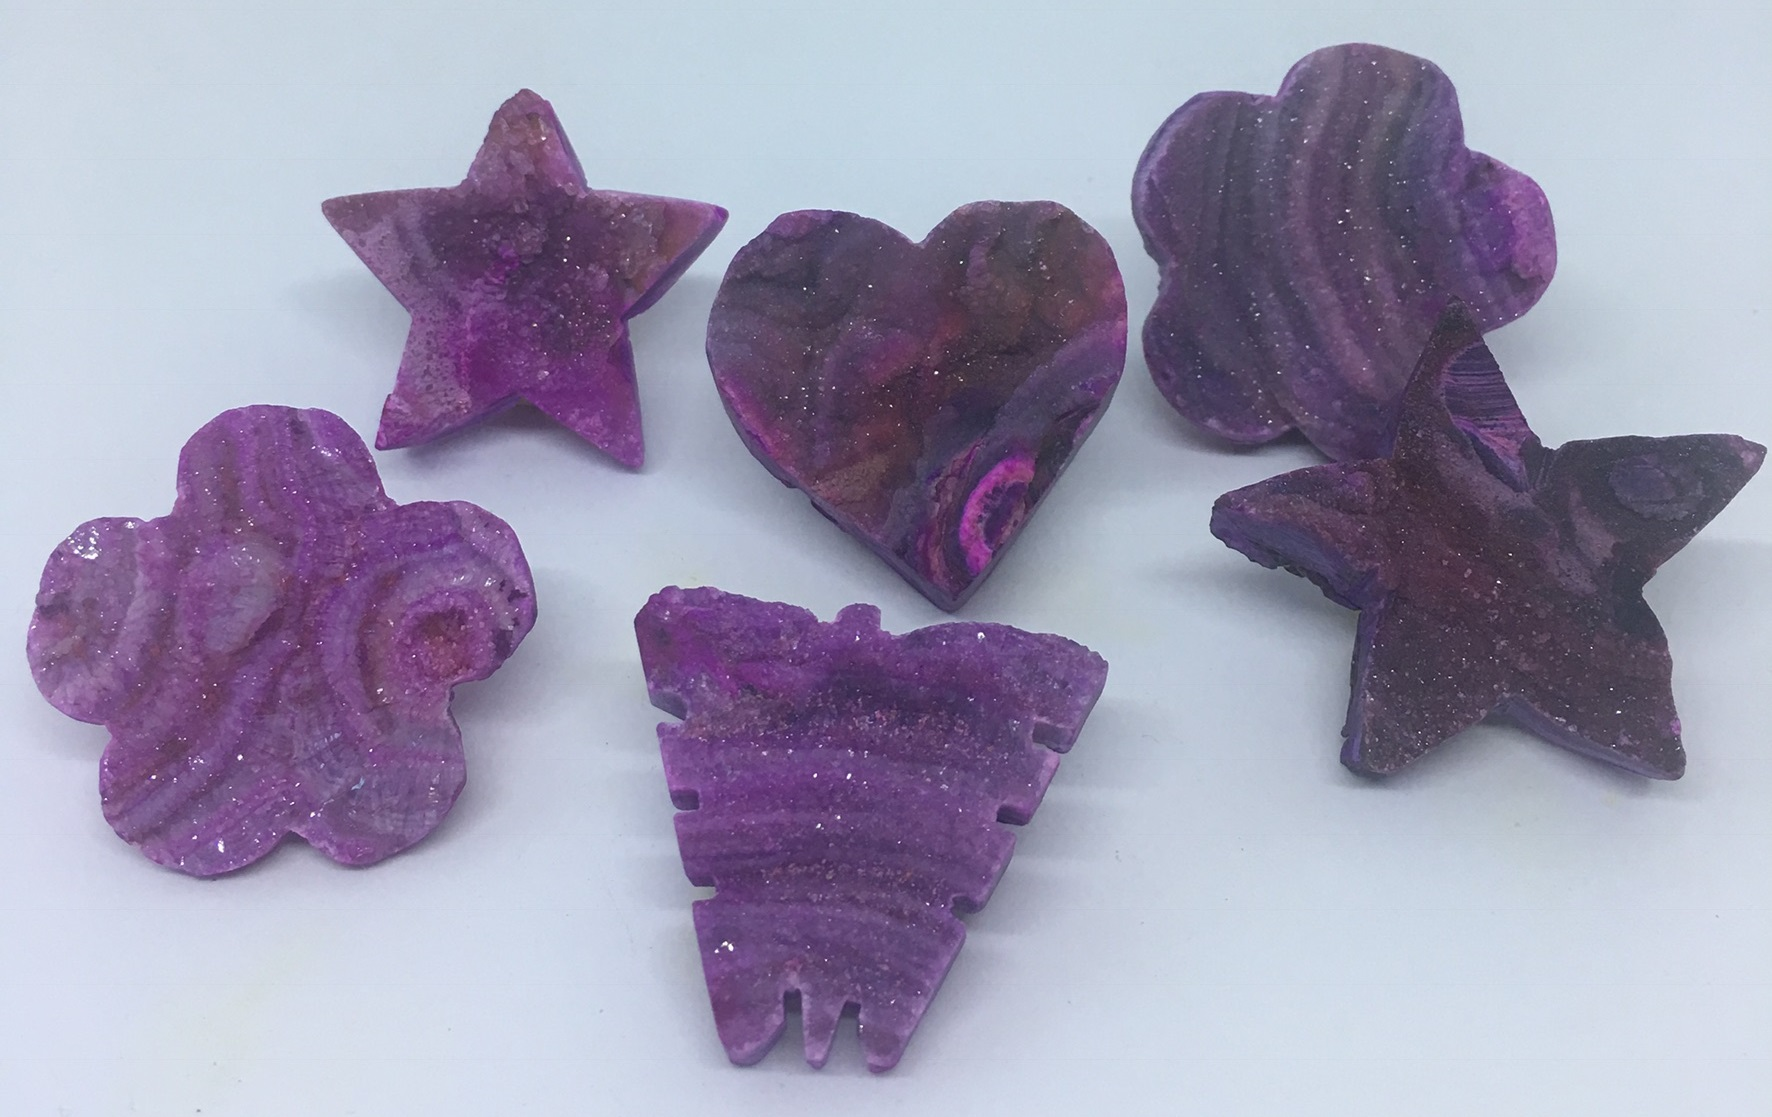 Stones from Uruguay - Pink Dyed Chalcedony Druzy Shapes for Pendant Making